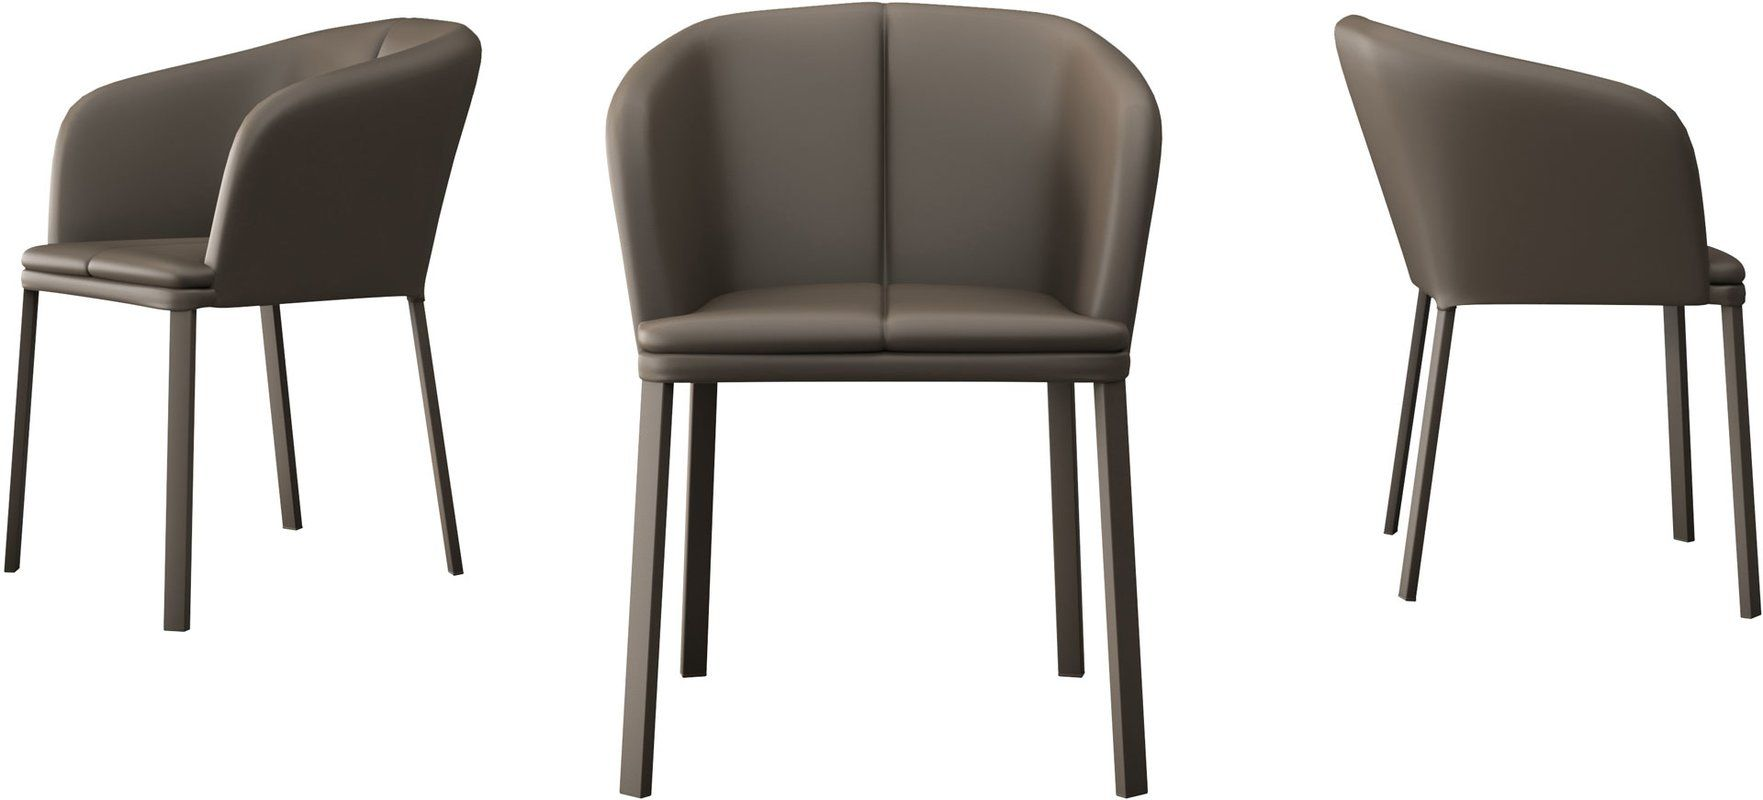 Como Genuine Leather Upholstered Dining Chair Dining Chairs